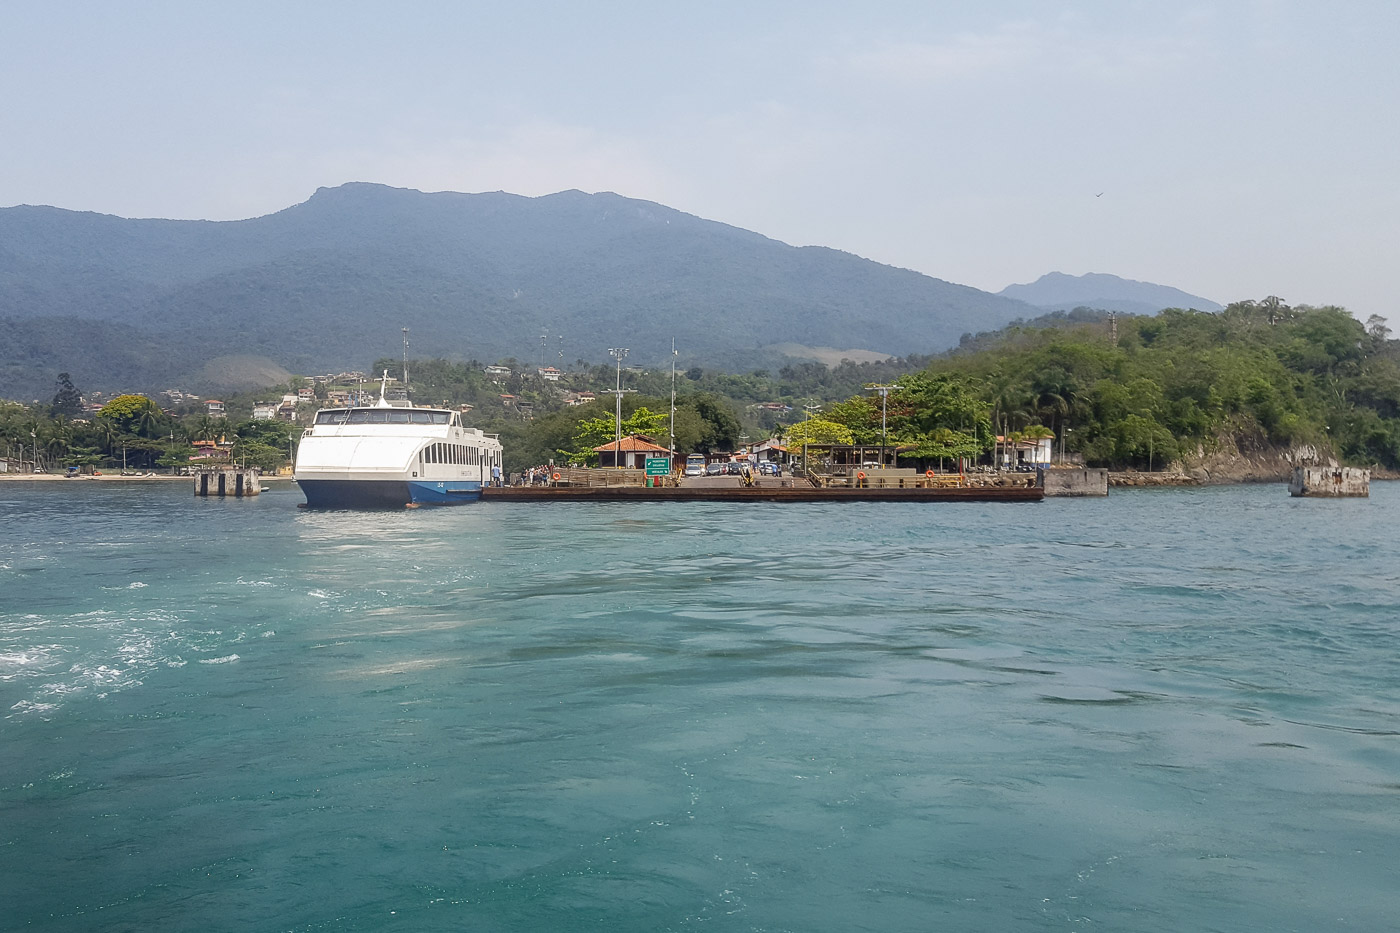 View of the ferry boat between Sao Sebastiao and Ilhabela